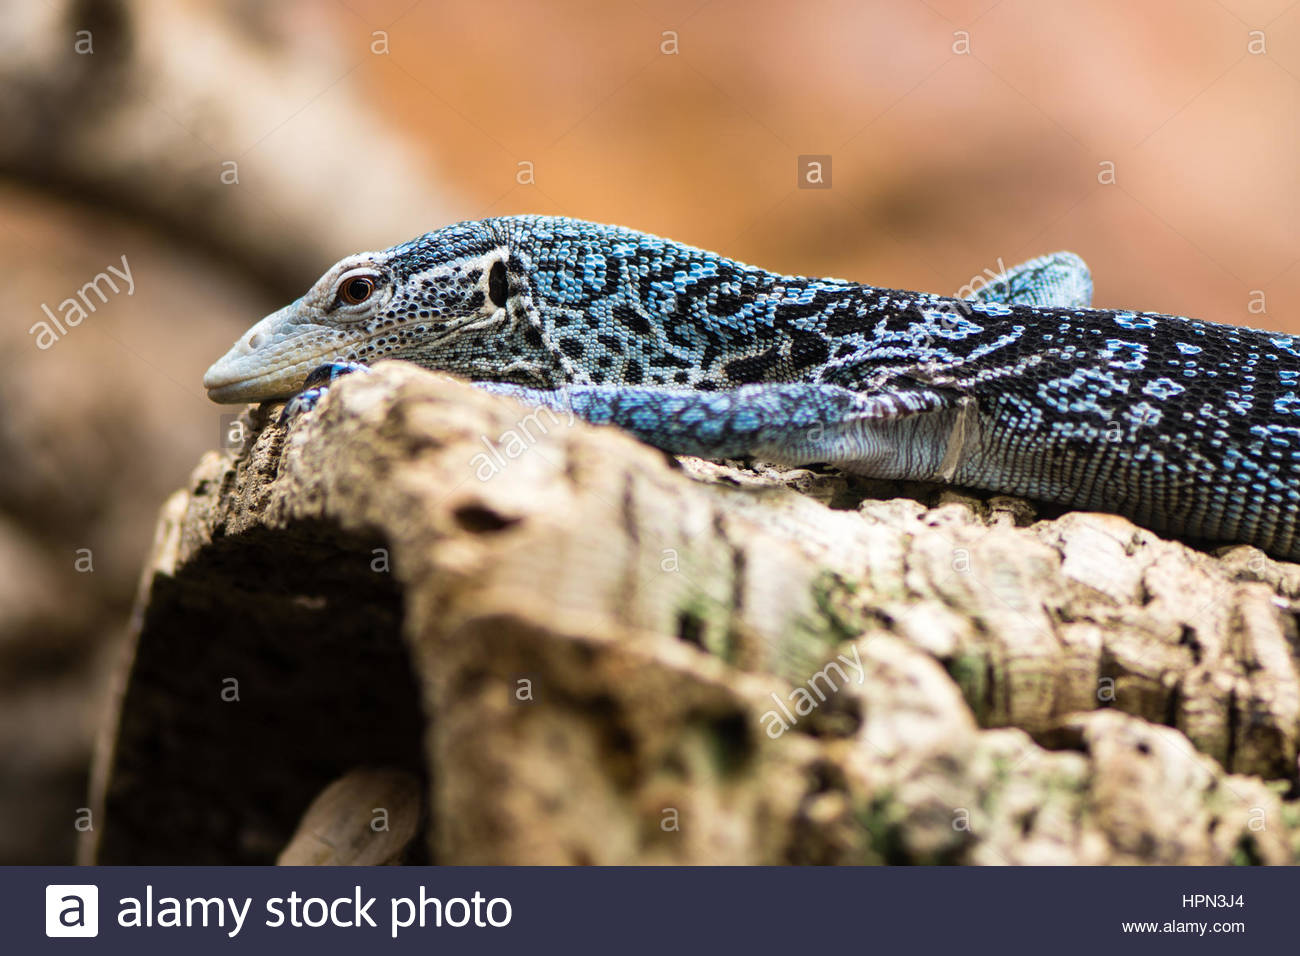 Blue-spotted Tree Monitor clipart #5, Download drawings